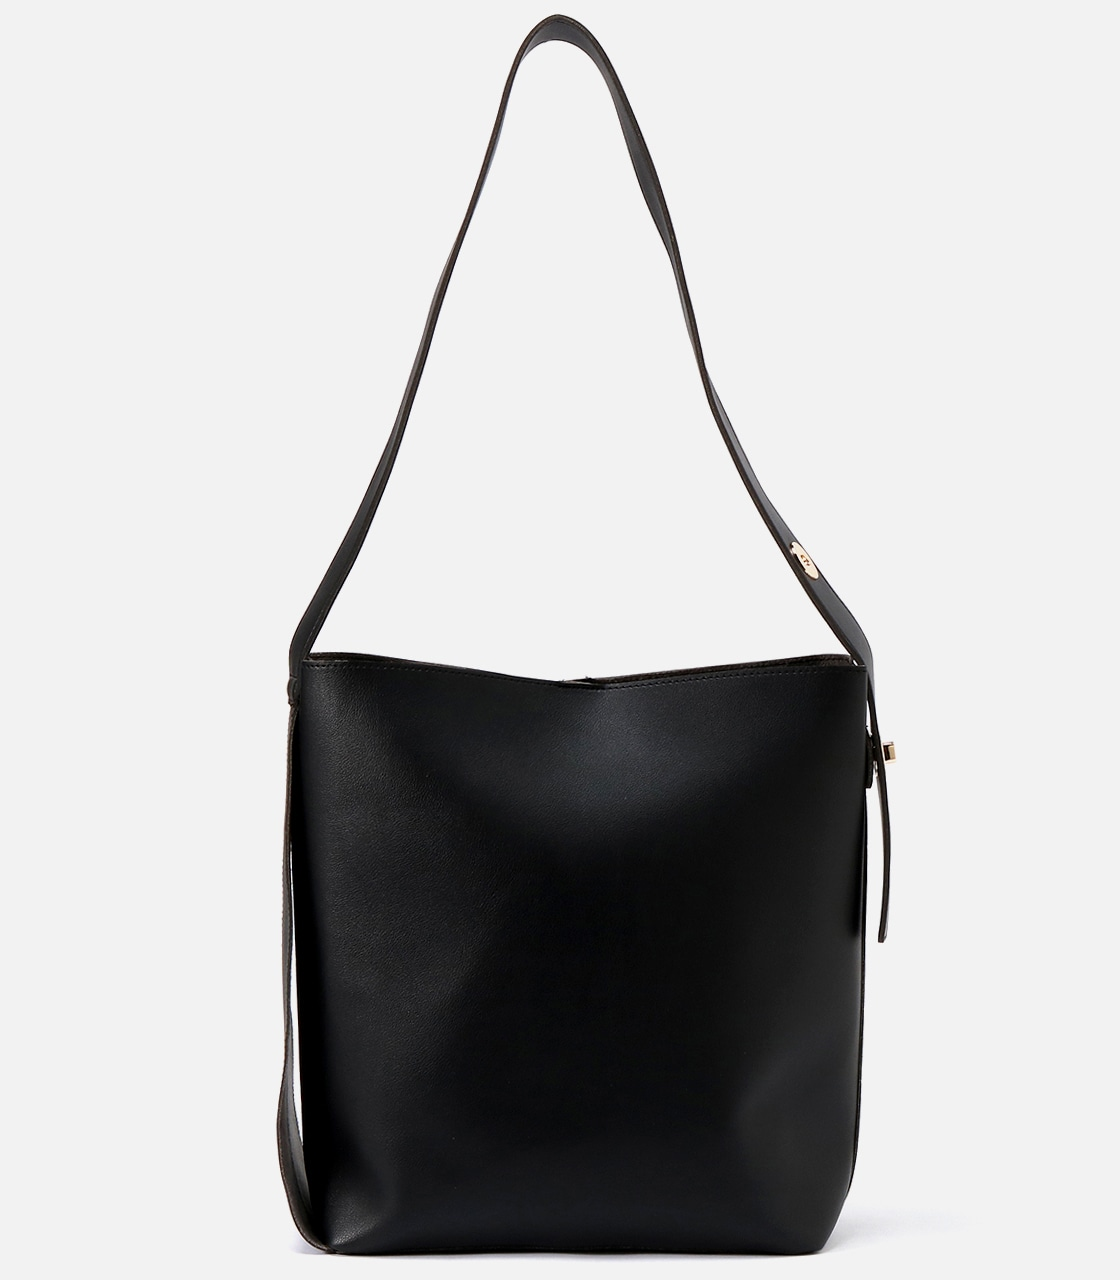 【AZUL BY MOUSSY】SQUARE TOTABAG 詳細画像 BLK 1